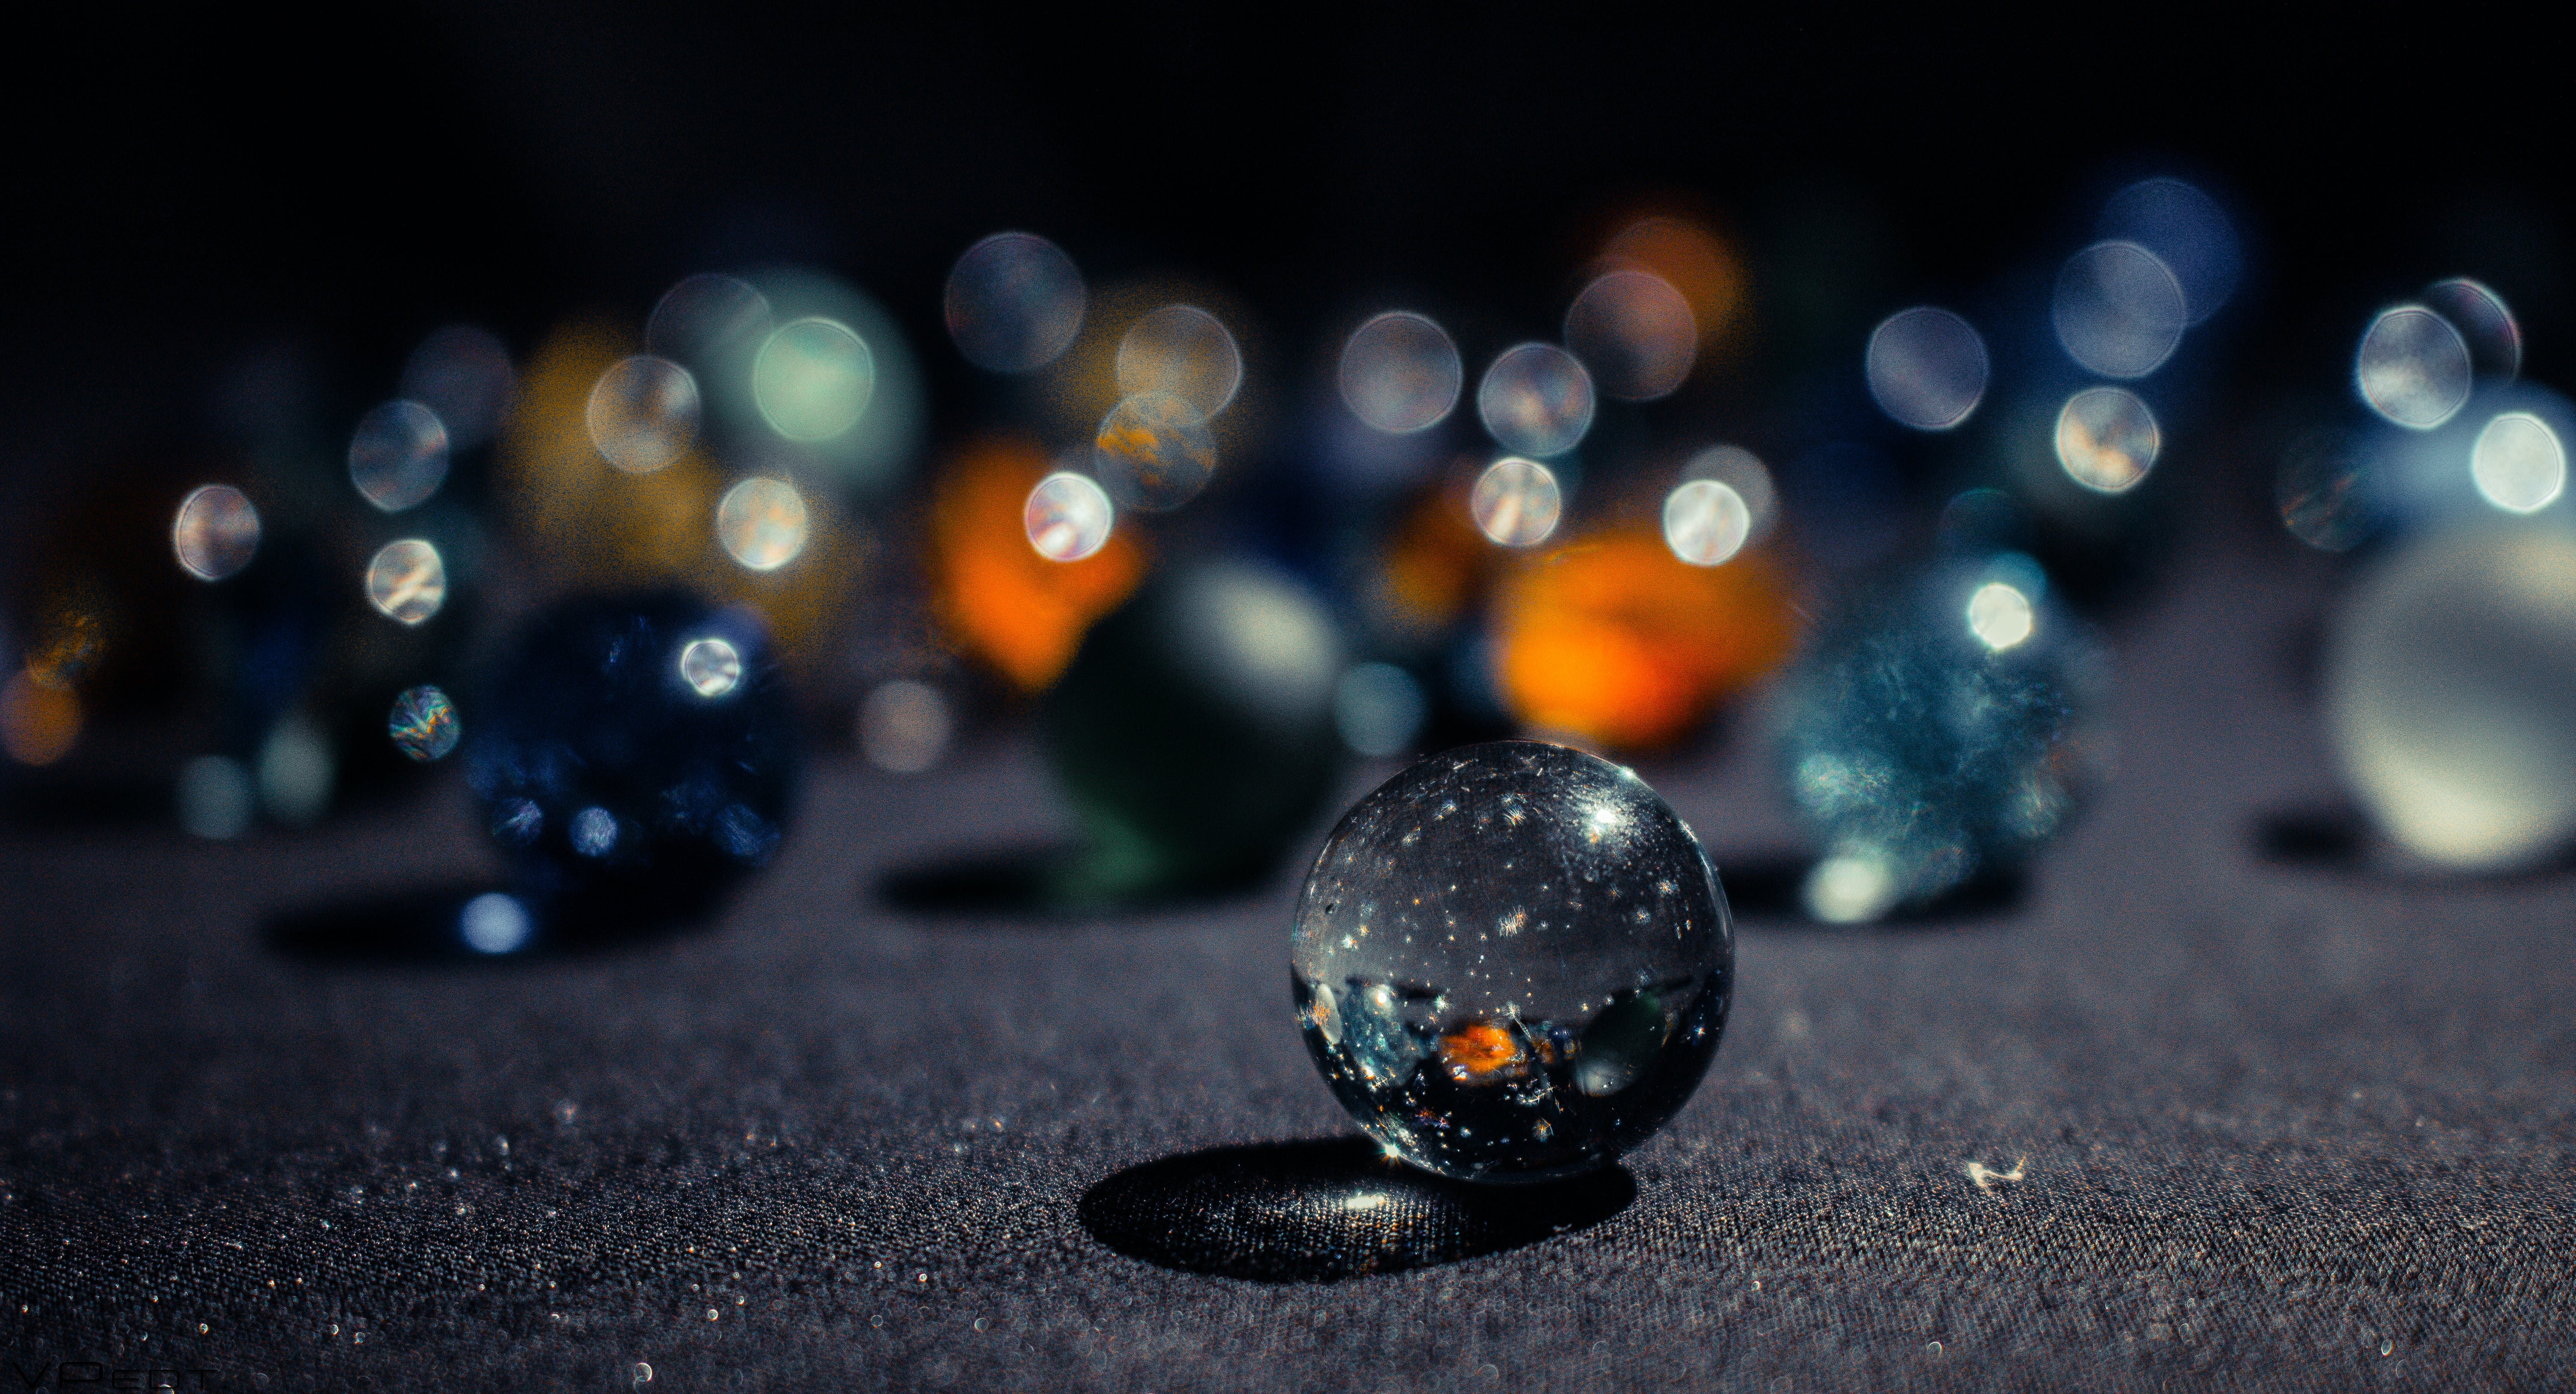 Selective Focus Photography of Marble Ball